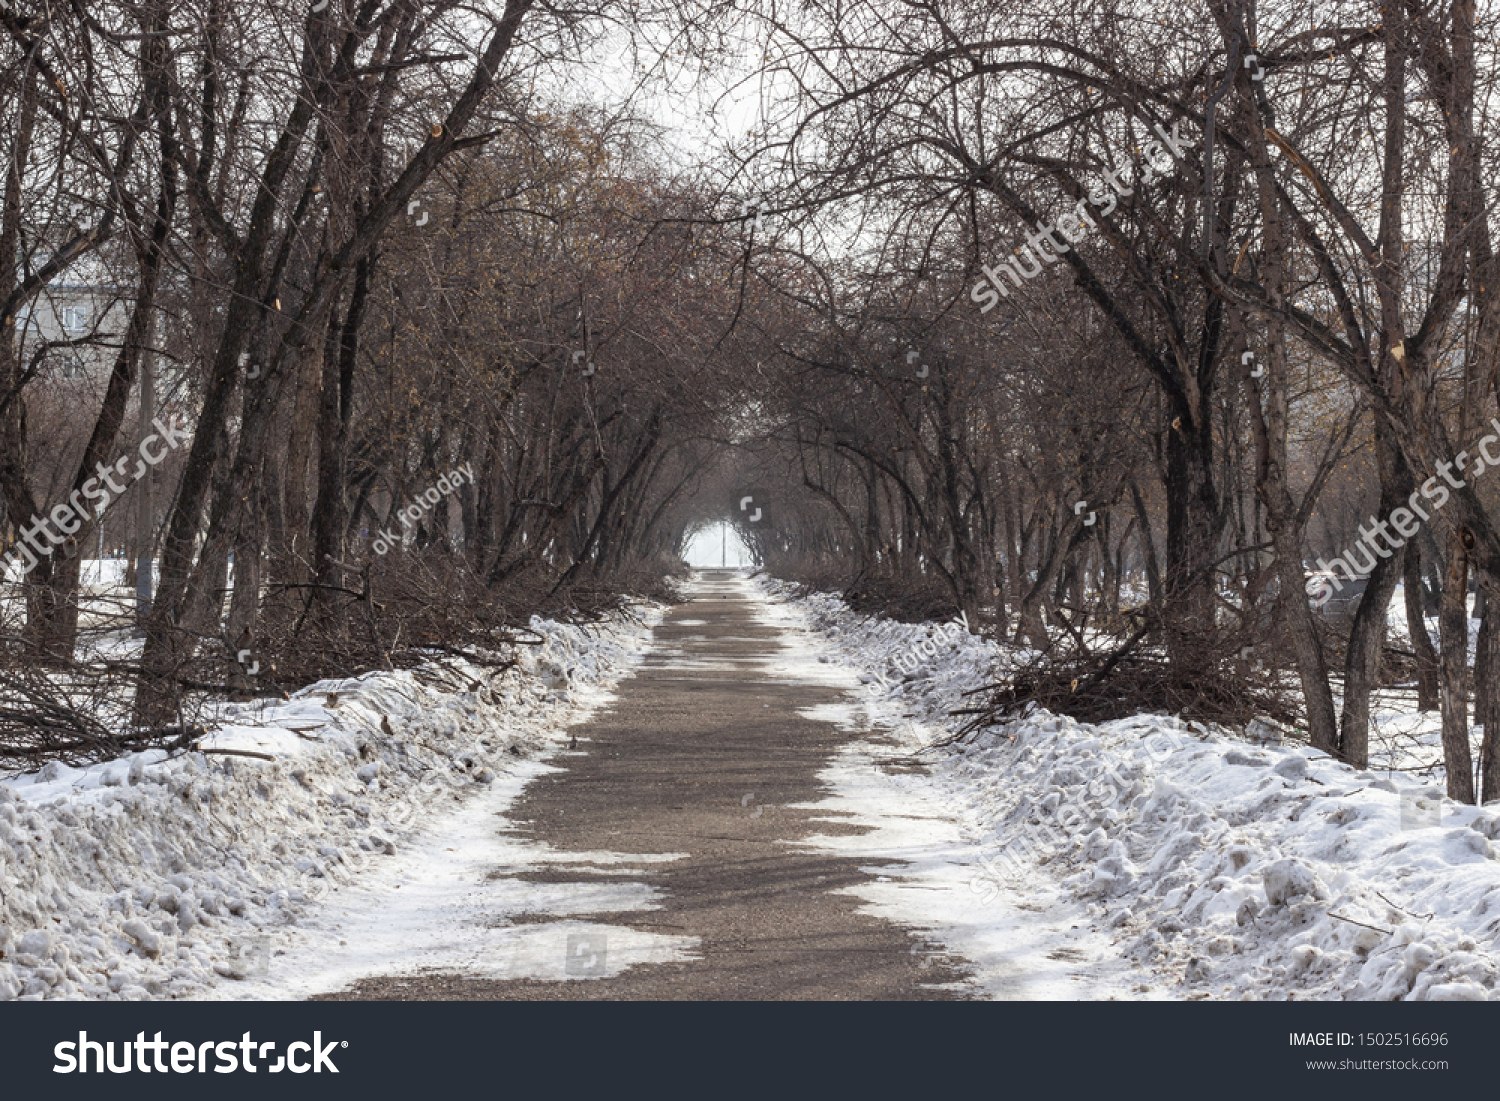 A deserted alley on a winter day, bare trees and cut branches in snowdrifts